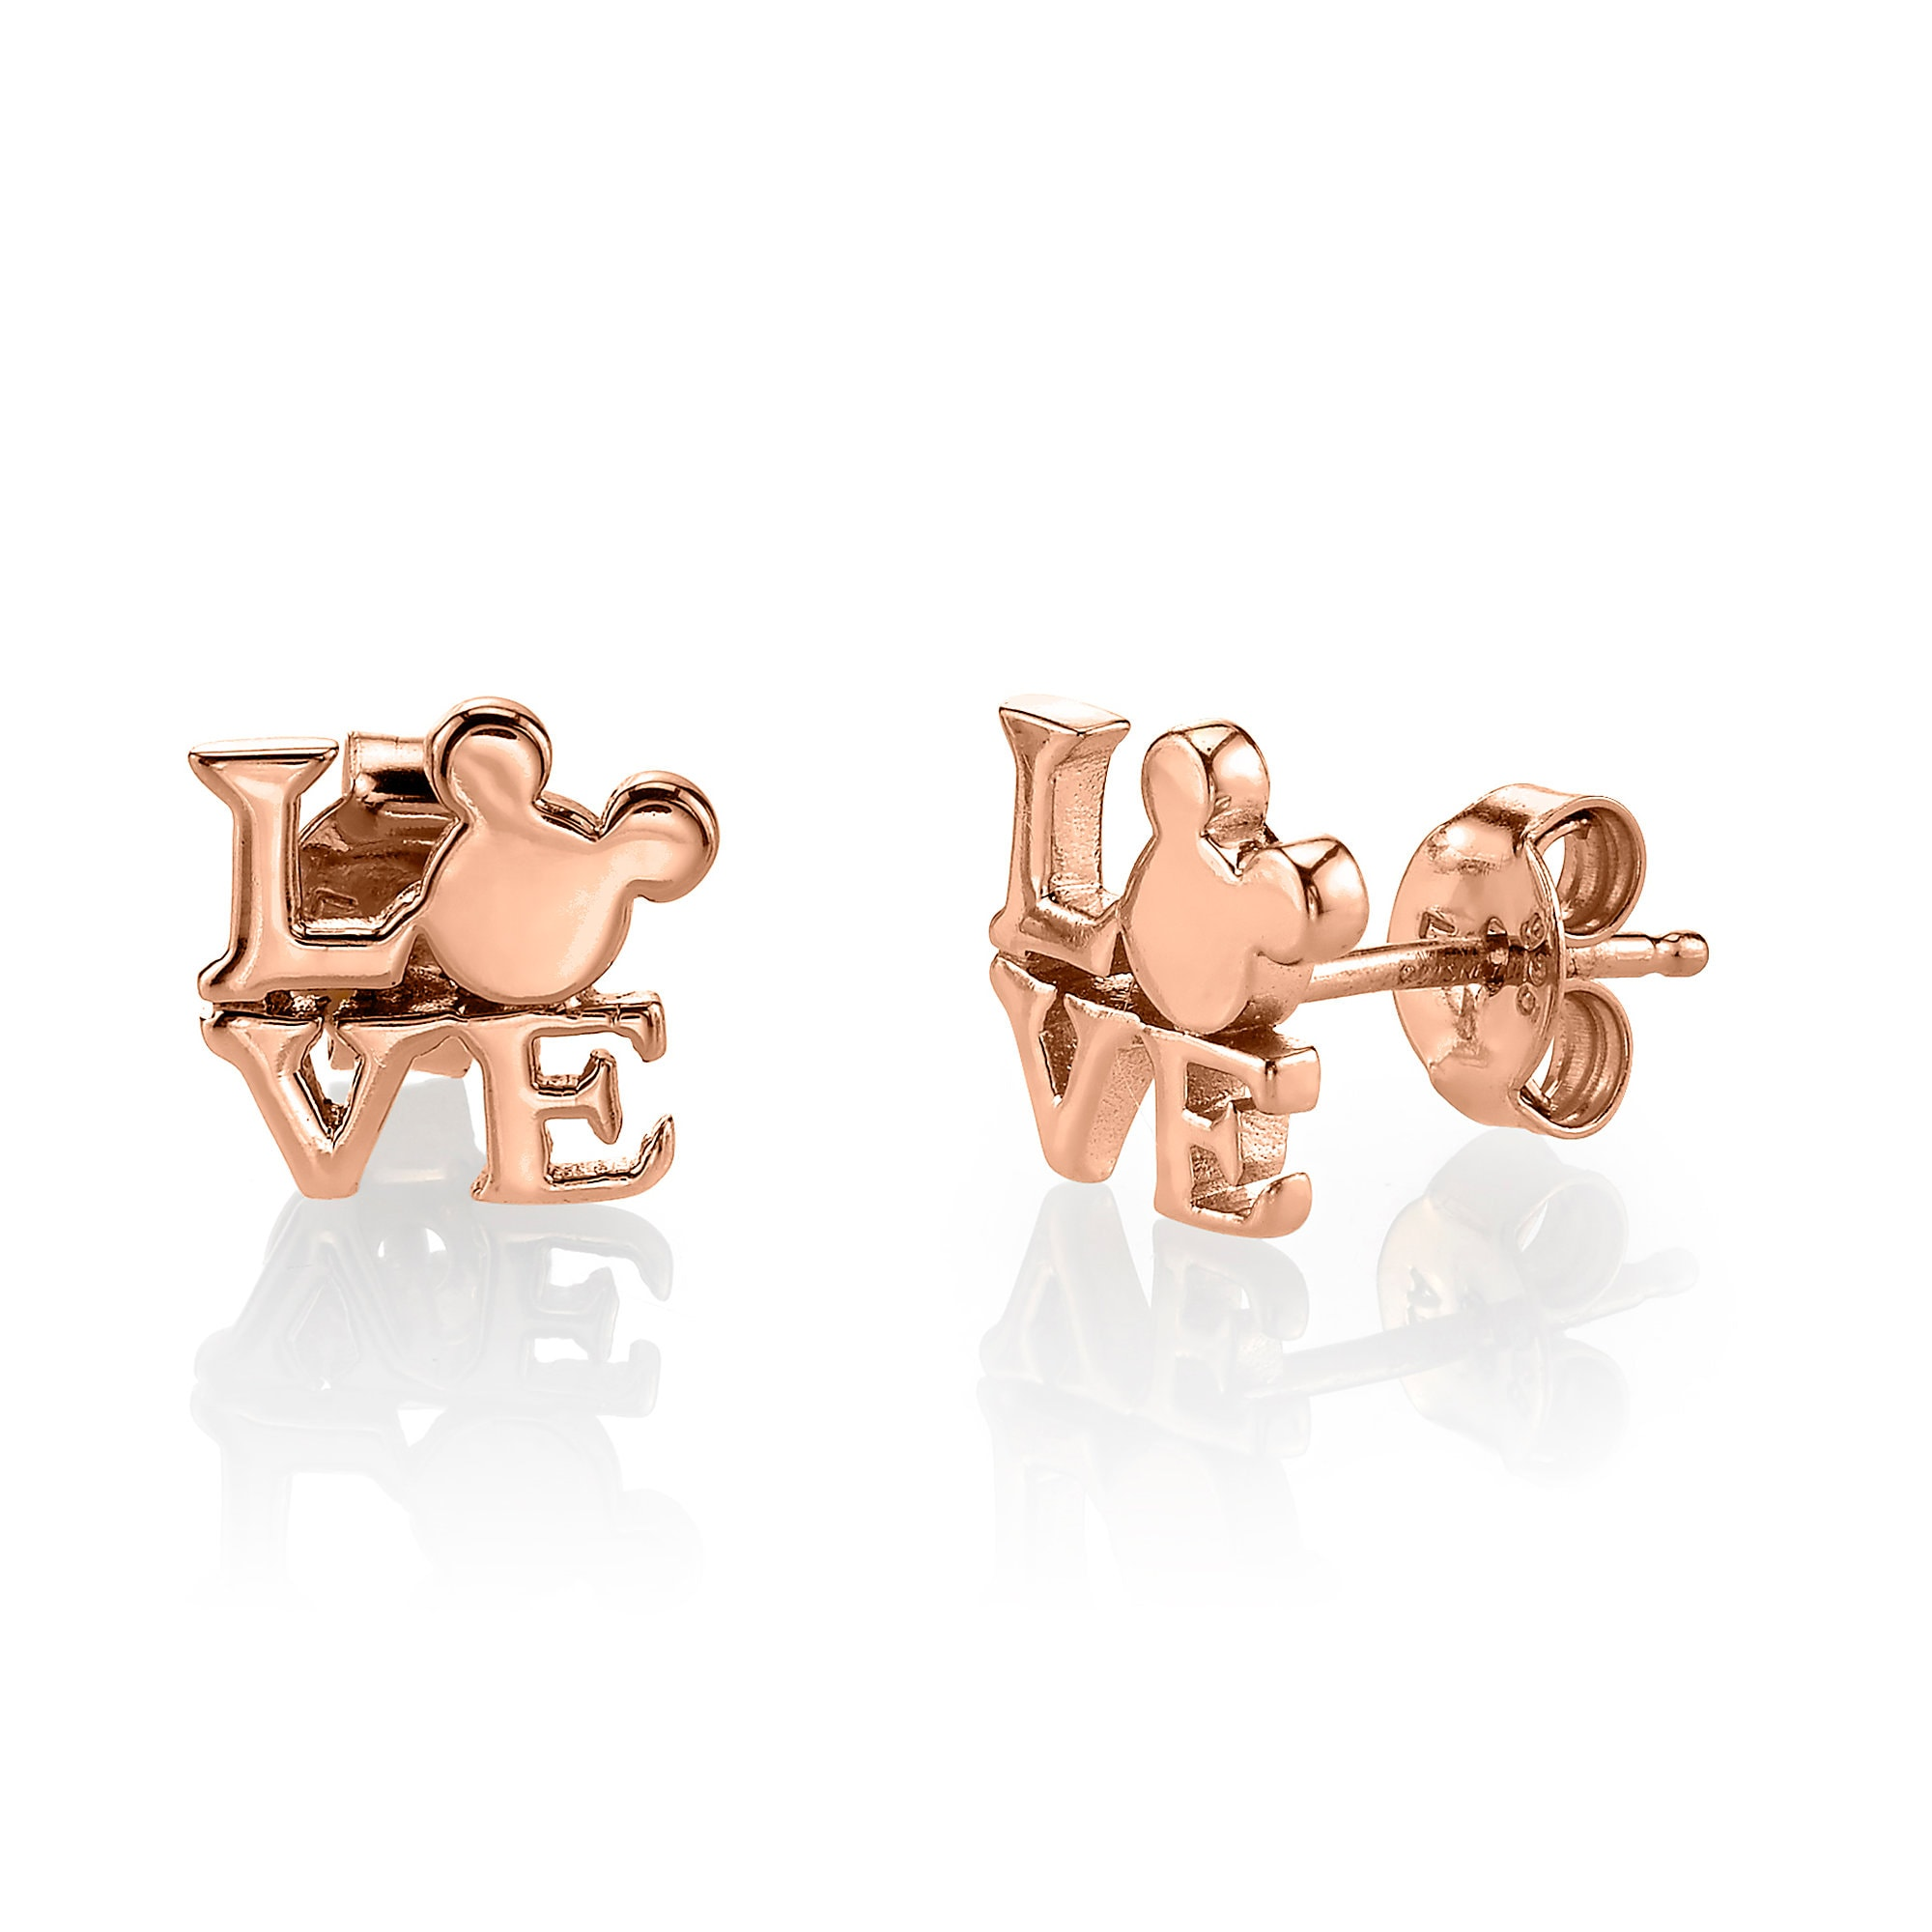 Soulful Thumbnail Image Mickey Mouse Rose G Earrings Mickey Mouse Rose G Earrings Shopdisney Rose G Earrings Walmart Rose G Earrings Cheap wedding rings Rose Gold Earrings